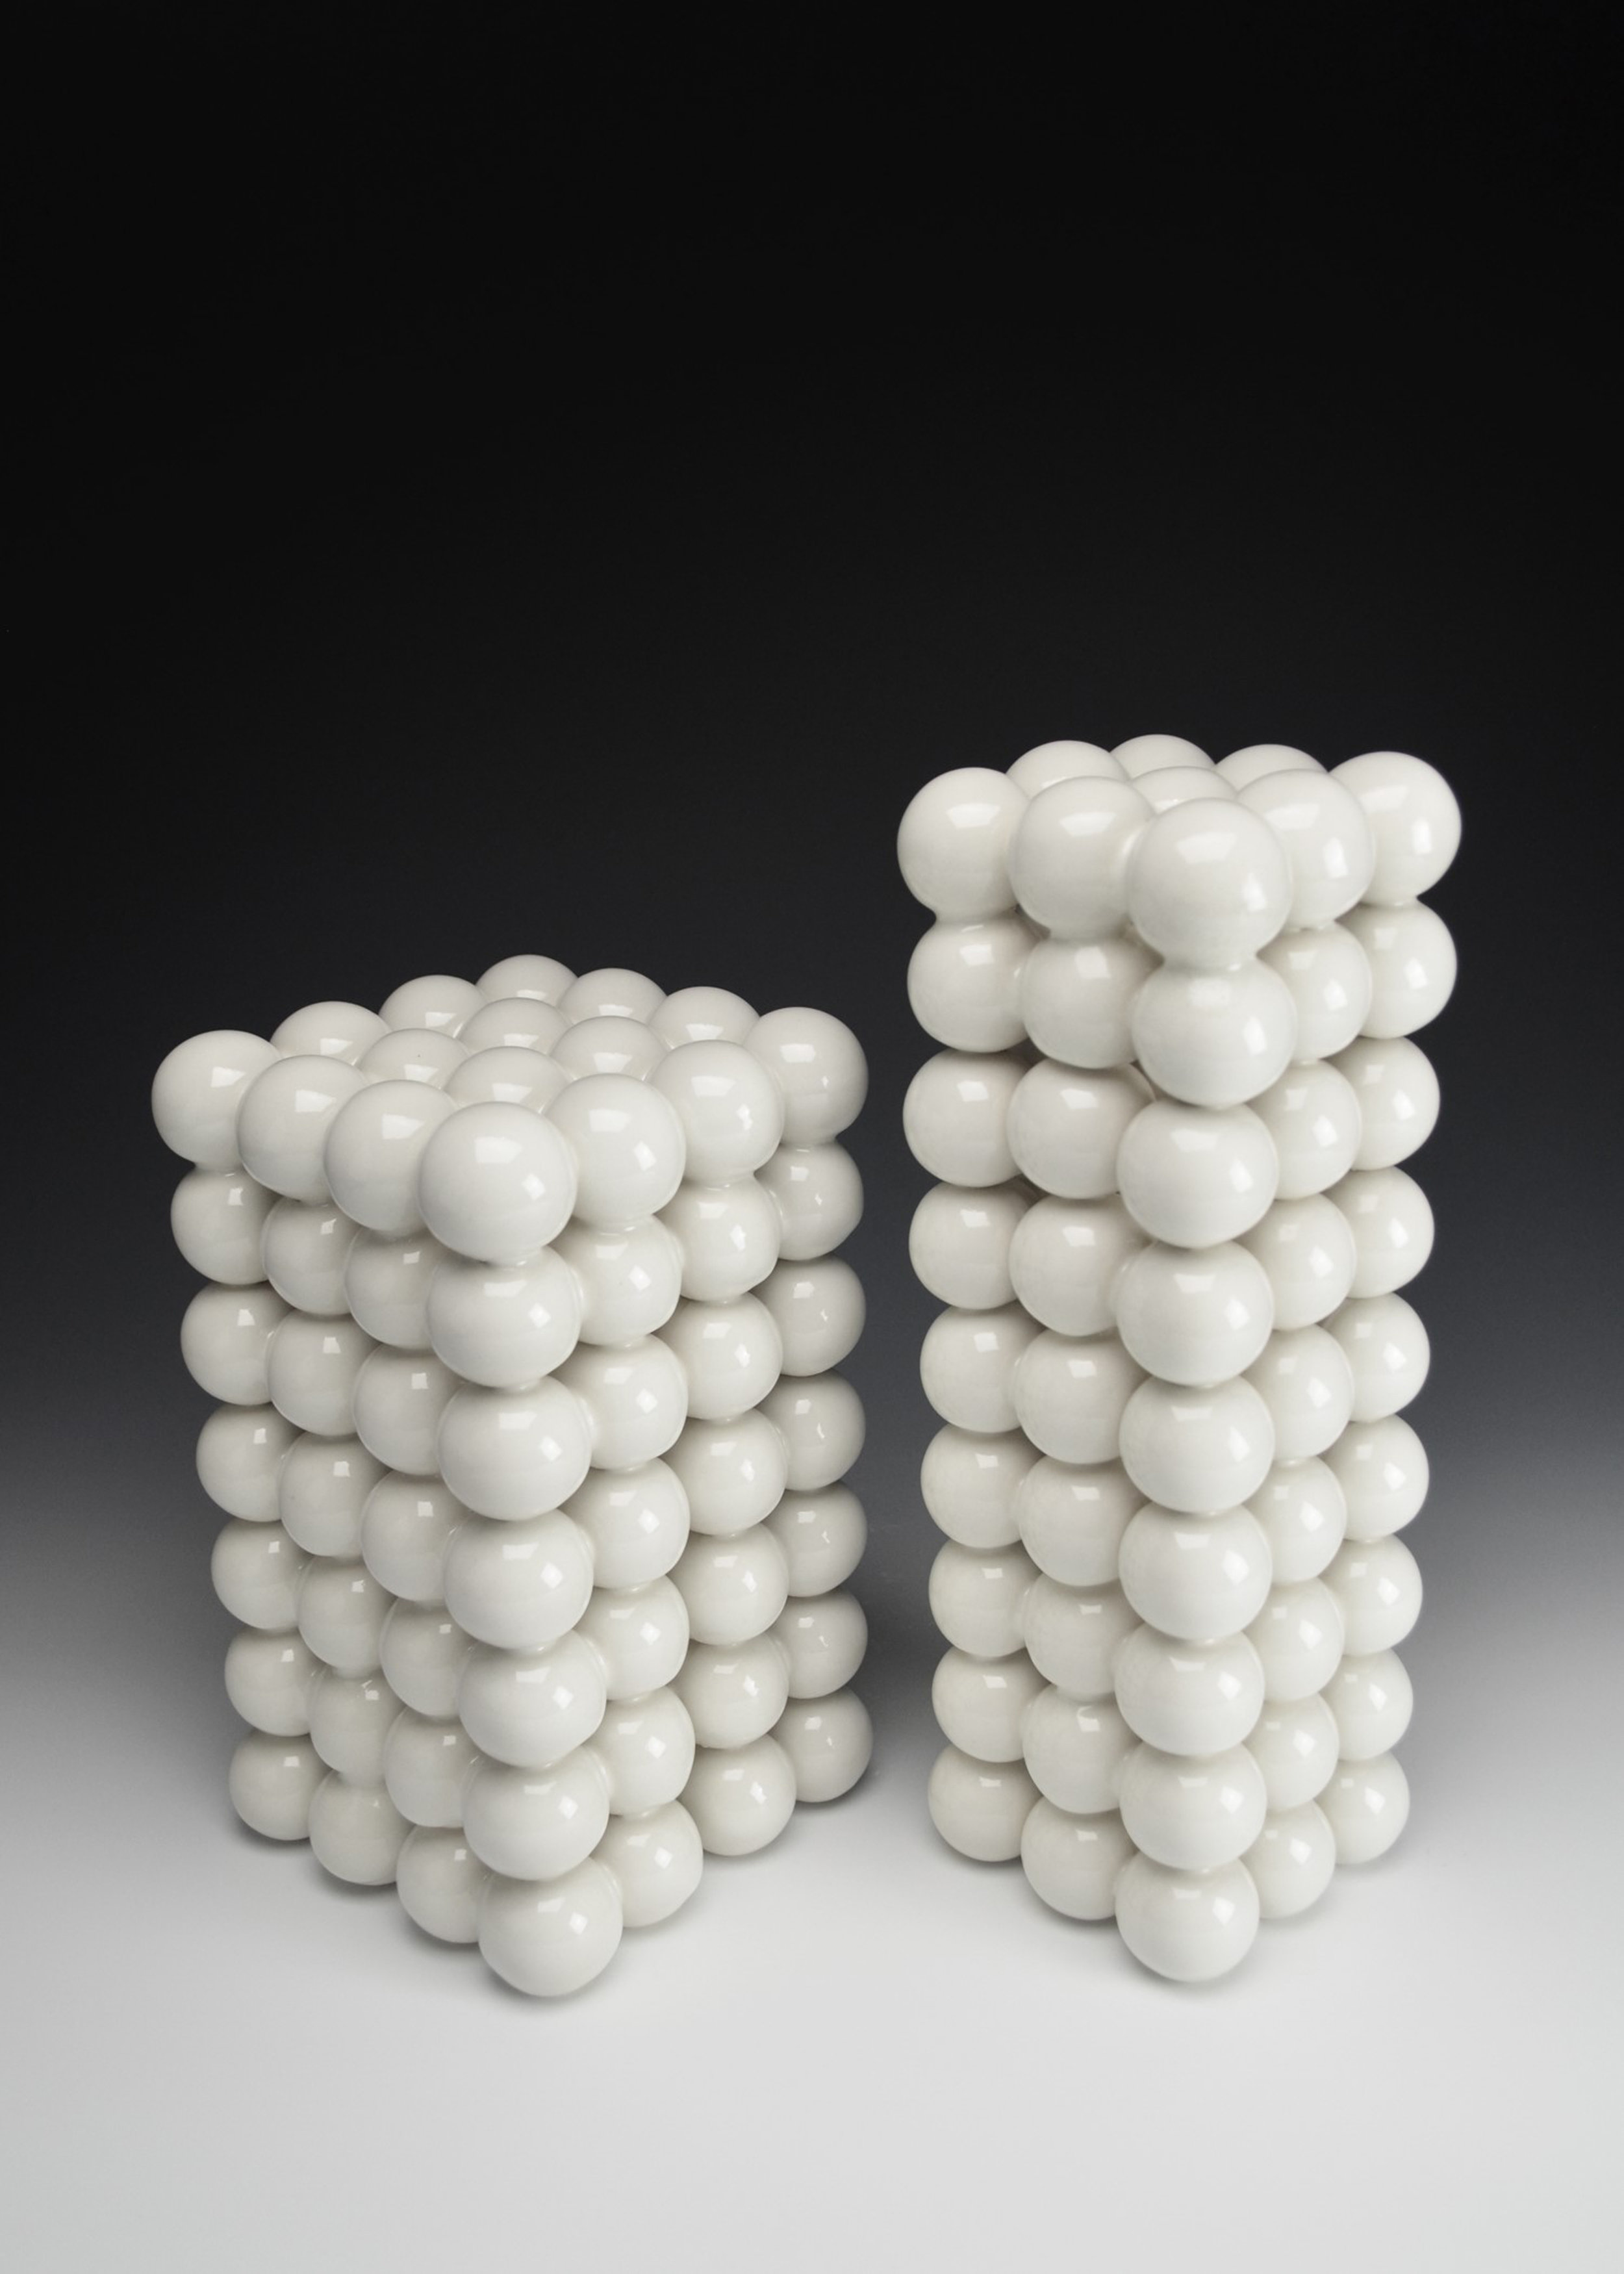 Ionic Series: Constructions VI & VII  |  Left:  9.5 x 5.5 x 5.5 inches, Right: 12 x 4 x 4 inches  |  Porcelain, Glaze  |  2017